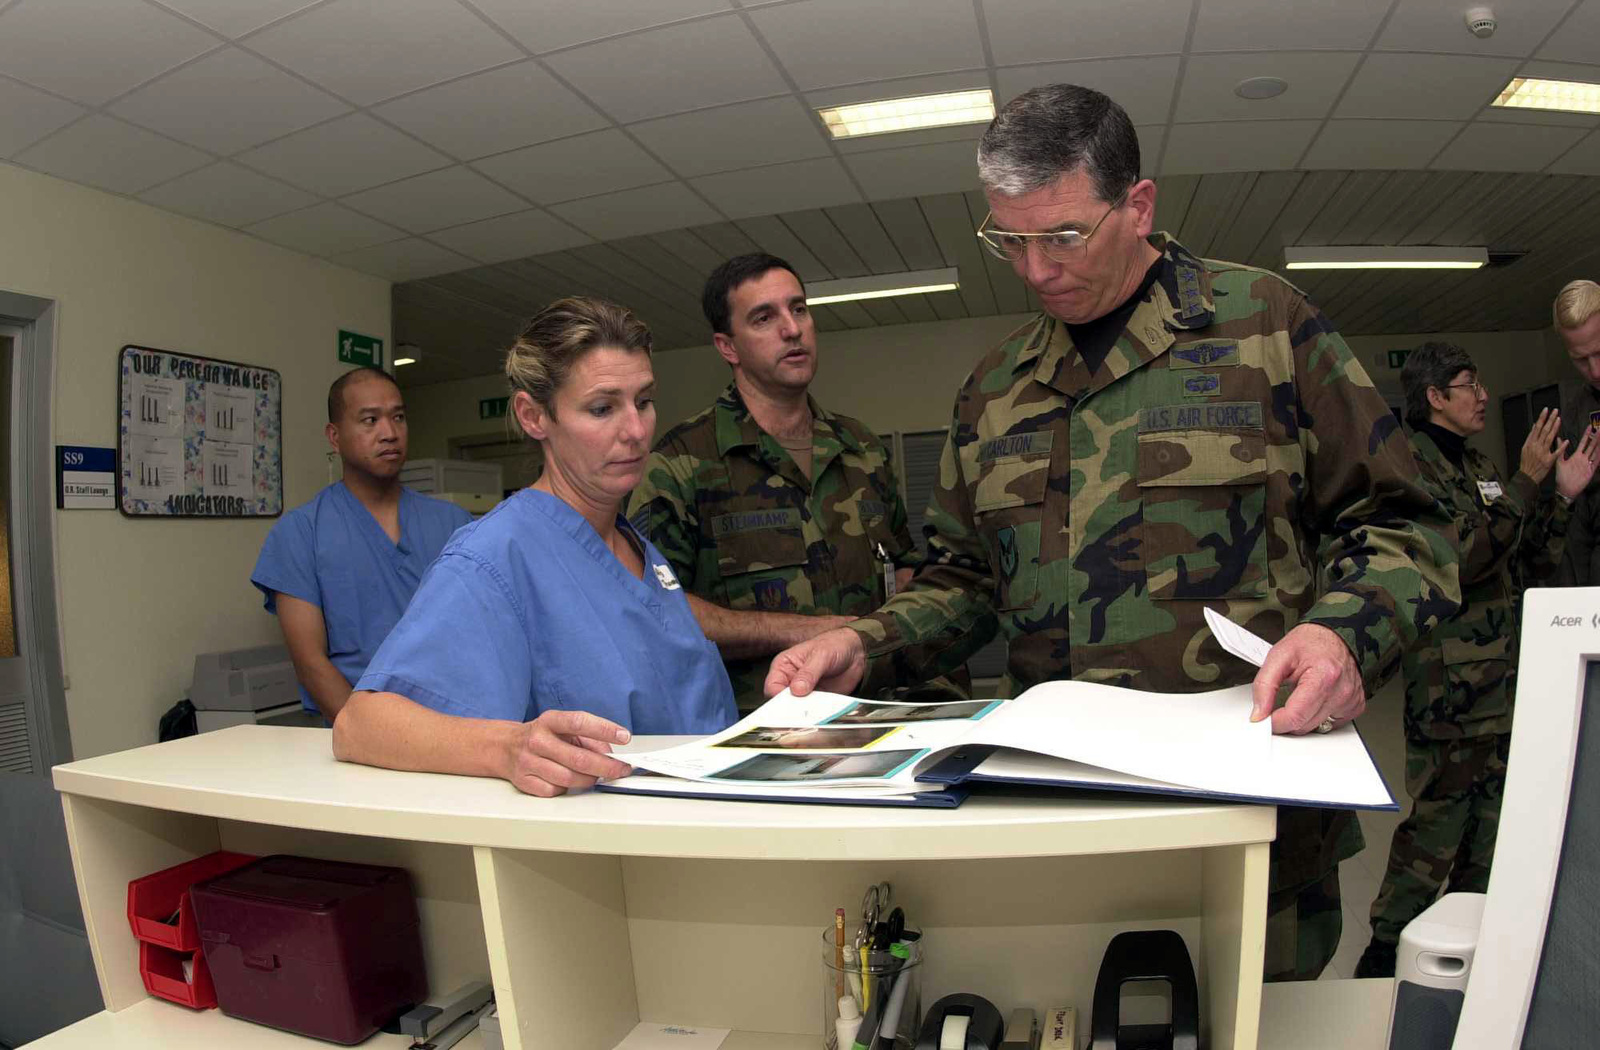 US Air Force Major Kimberly A. Thomas (Left foreground), a Surgical Services Provider for the 31st Medical Group, Aviano AIr Base, Italy, briefs USAF Lieutenant General Paul K. Carlton, Surgeon General of the Air Force, on the 31st Medical Group's rennovation efforts at Sacile Hospital